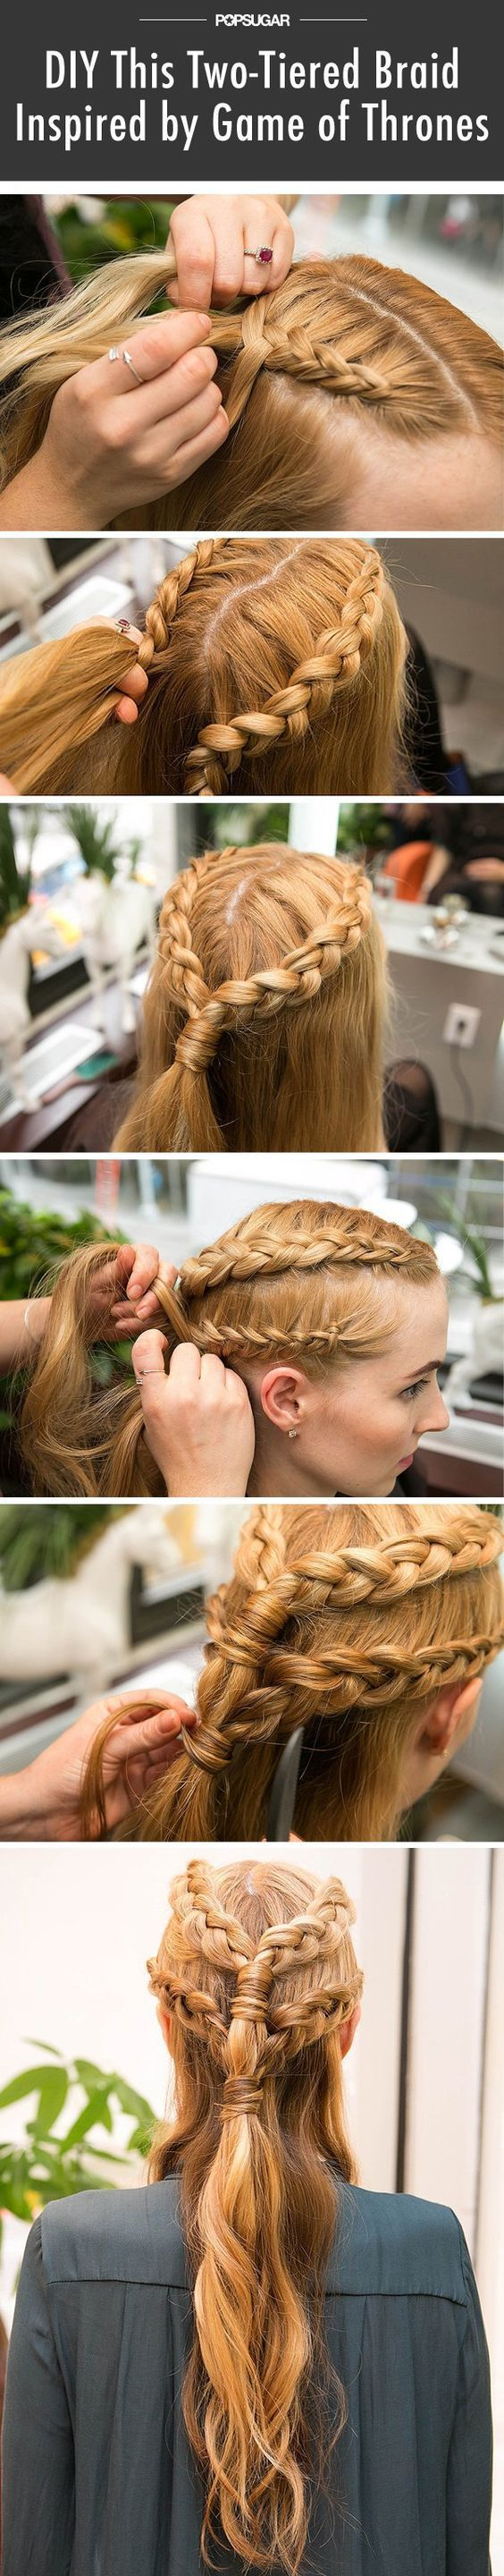 Try New Hairstyles – 23 Braid Tutorials For A Brand New Look On Upcoming Events And Casual Days